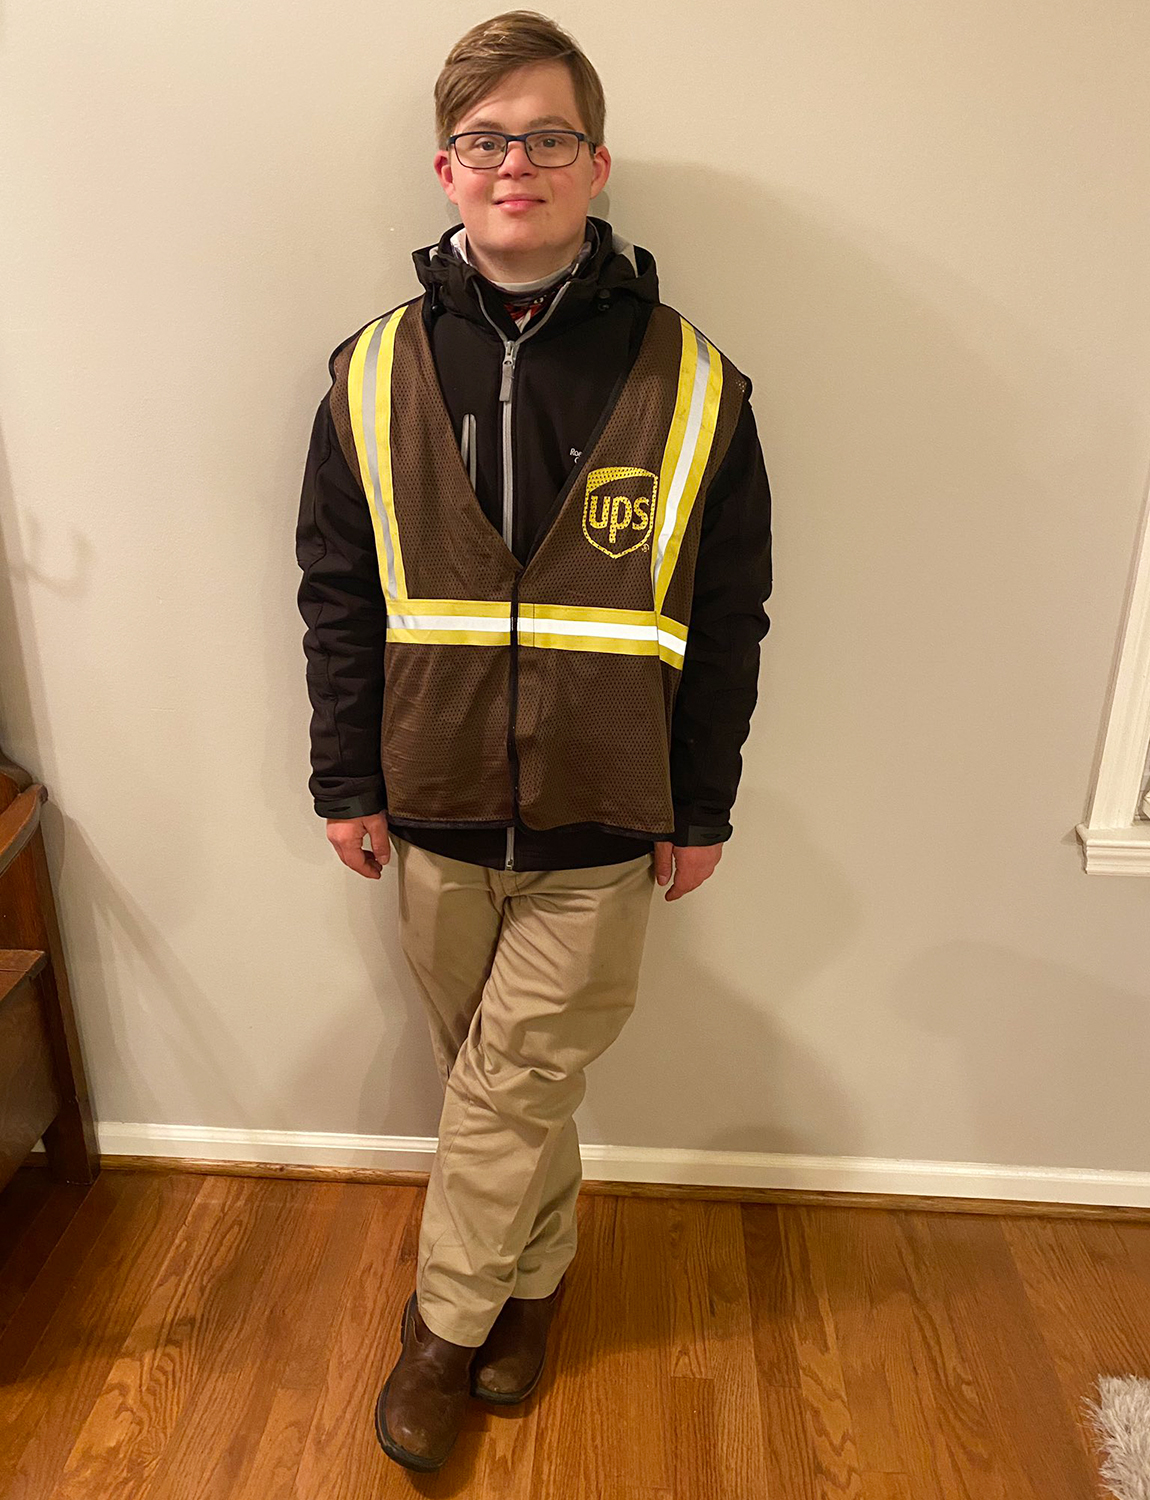 Jake Pratt, a man with Down syndrome who just landed a job with UPS